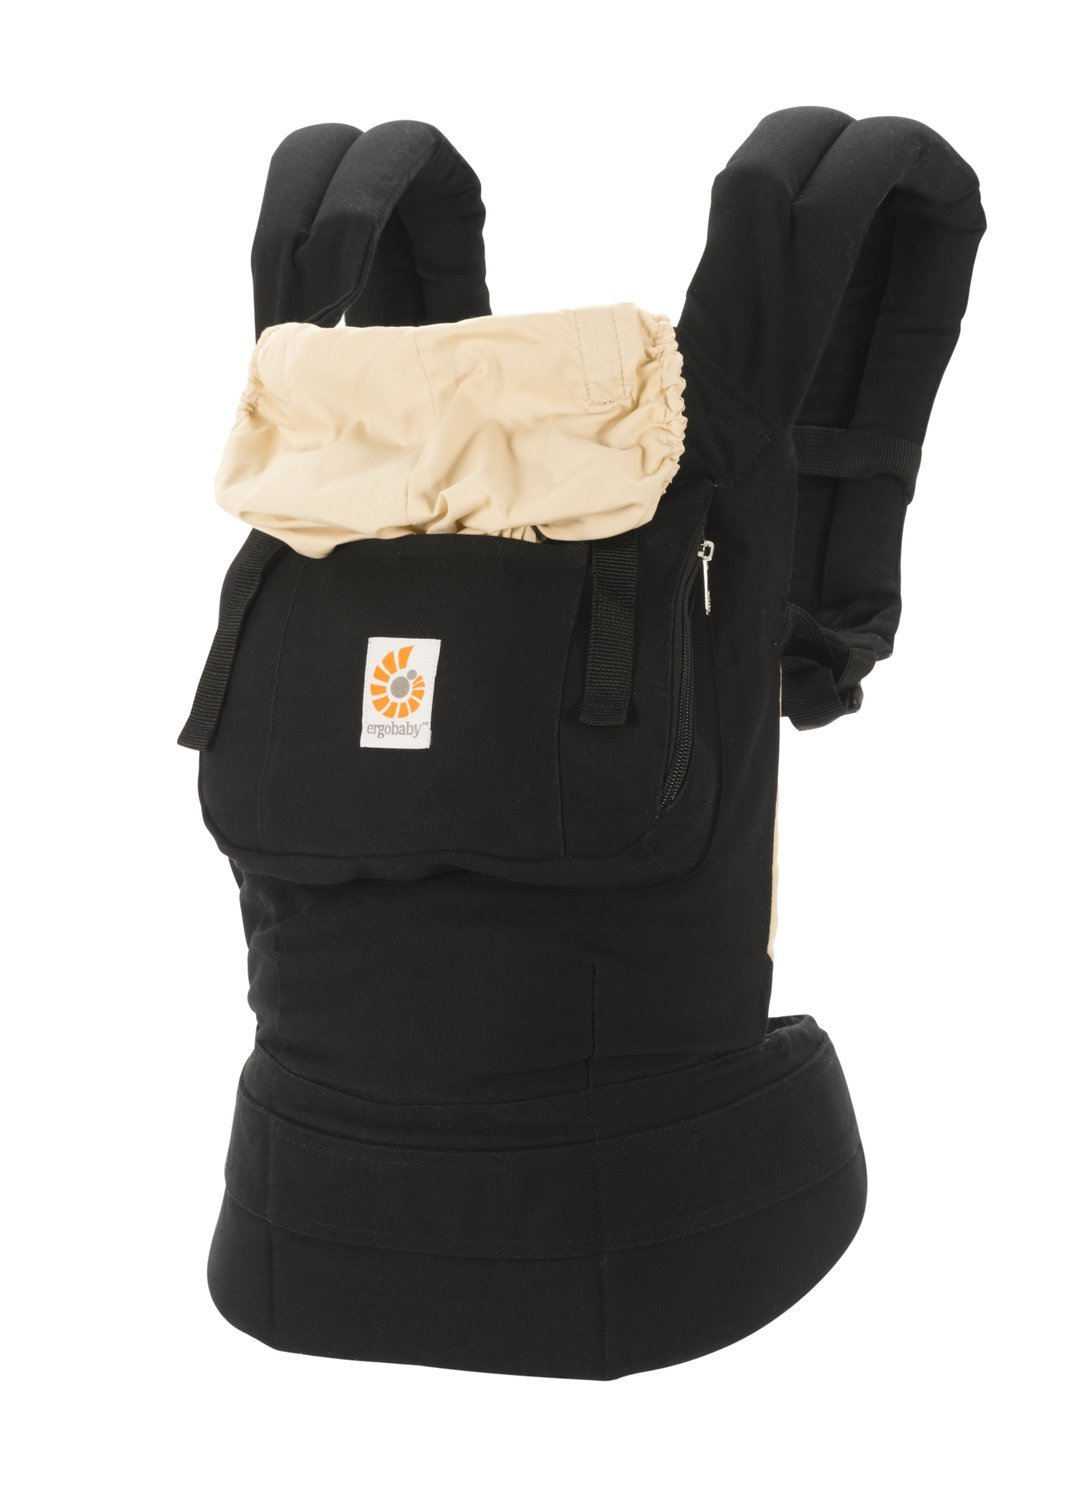 ERGObaby Baby Carrier Toddler Front Back Original Black/Camel, 100% Cotton Ergonomic Child Carrier Backpack BCANBLKCML